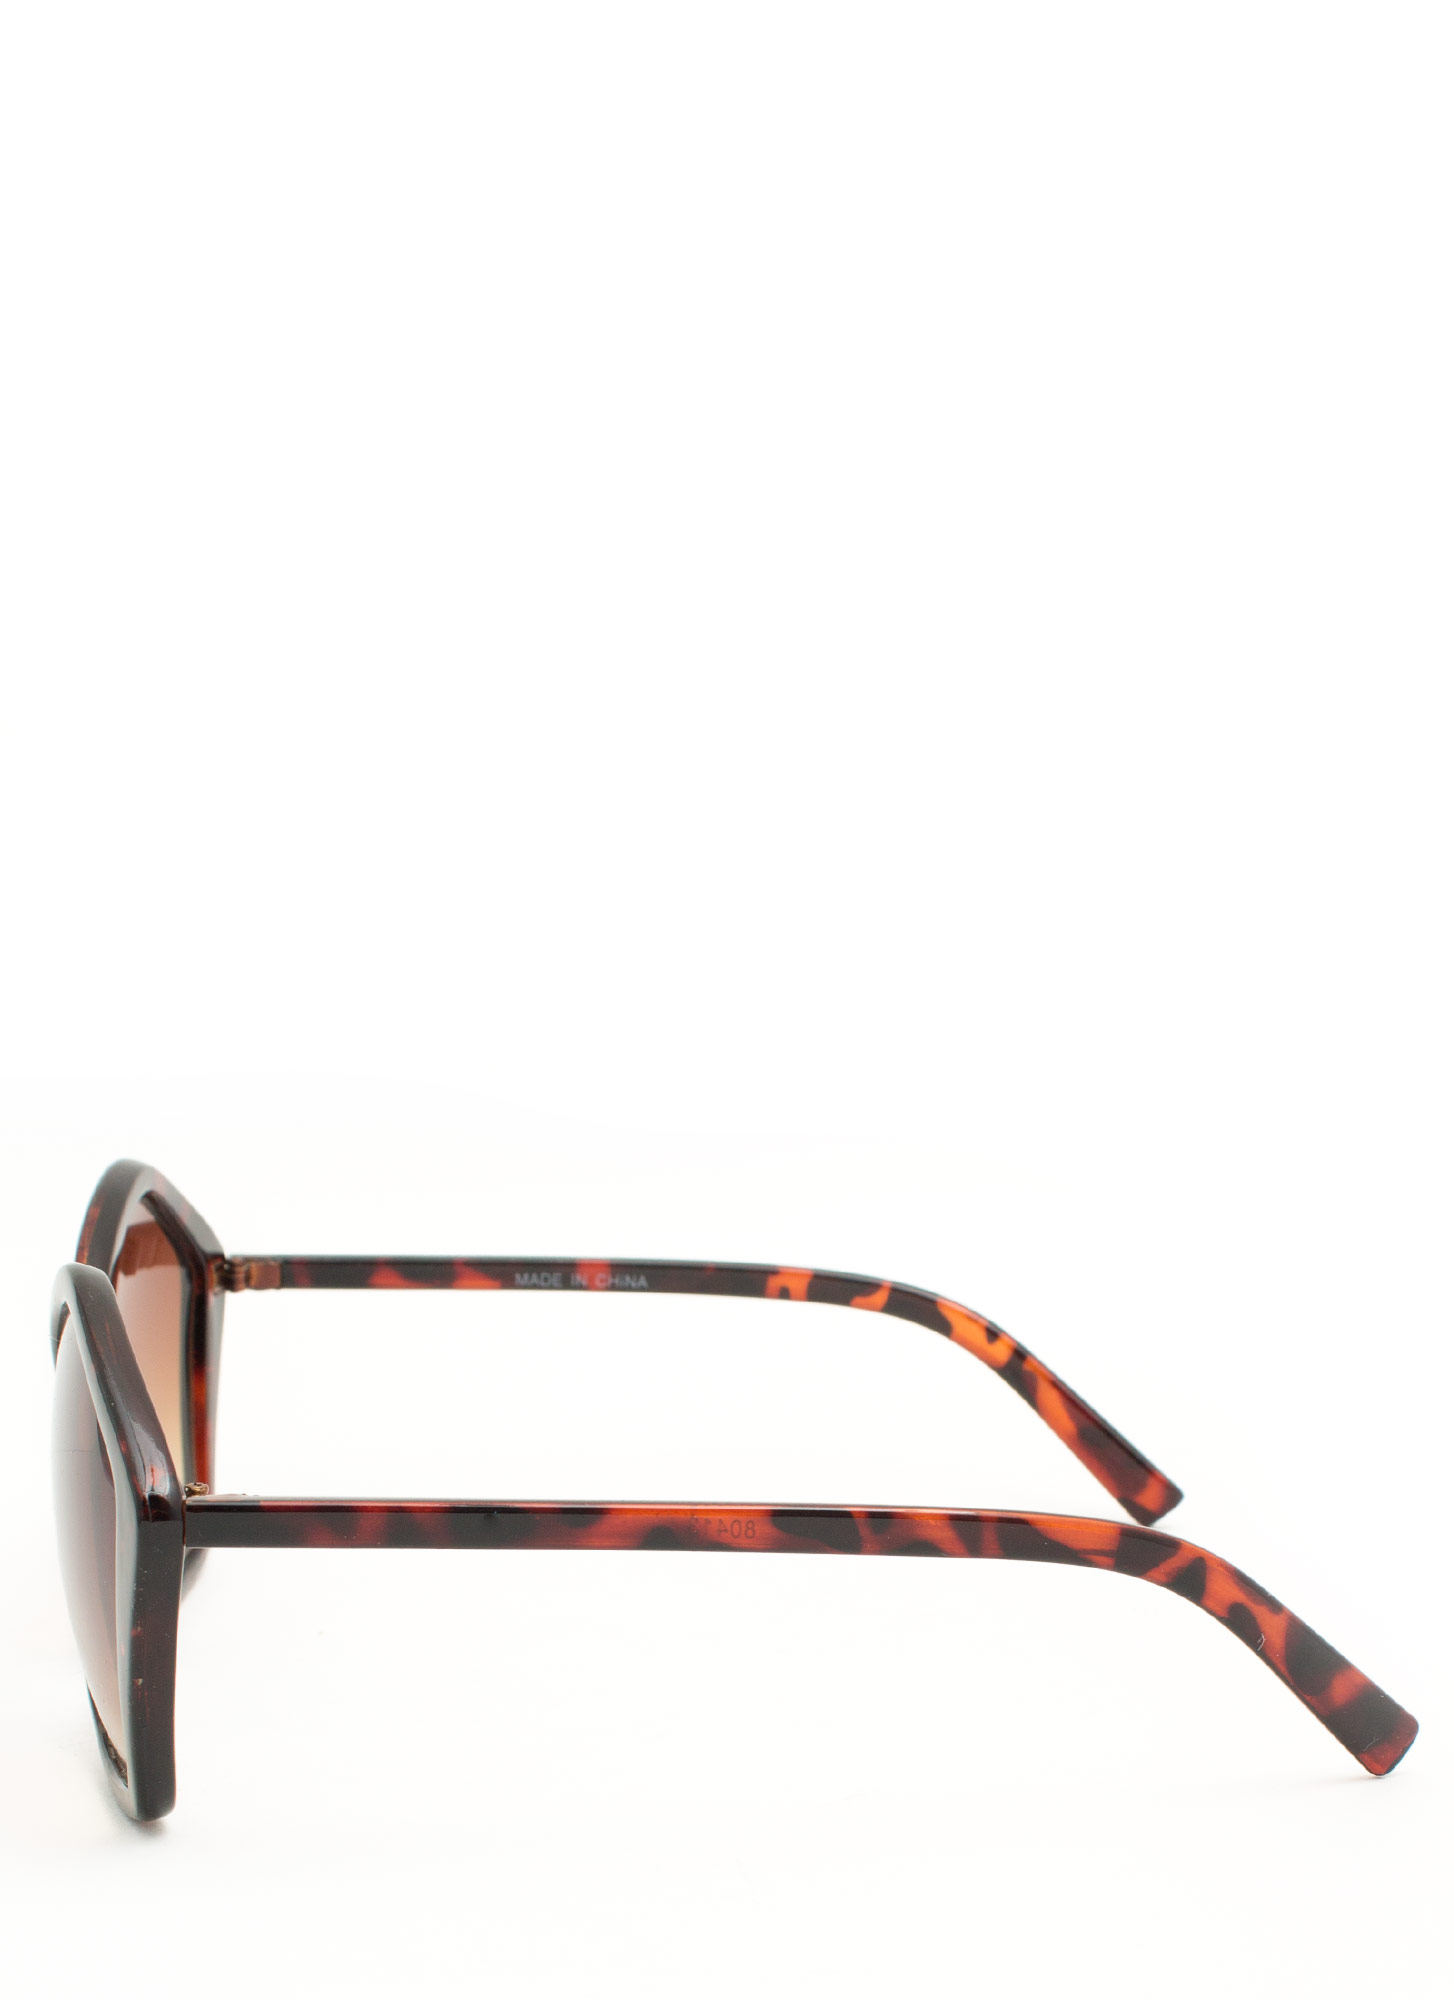 Pentagon Resin Sunglasses TORTOISE